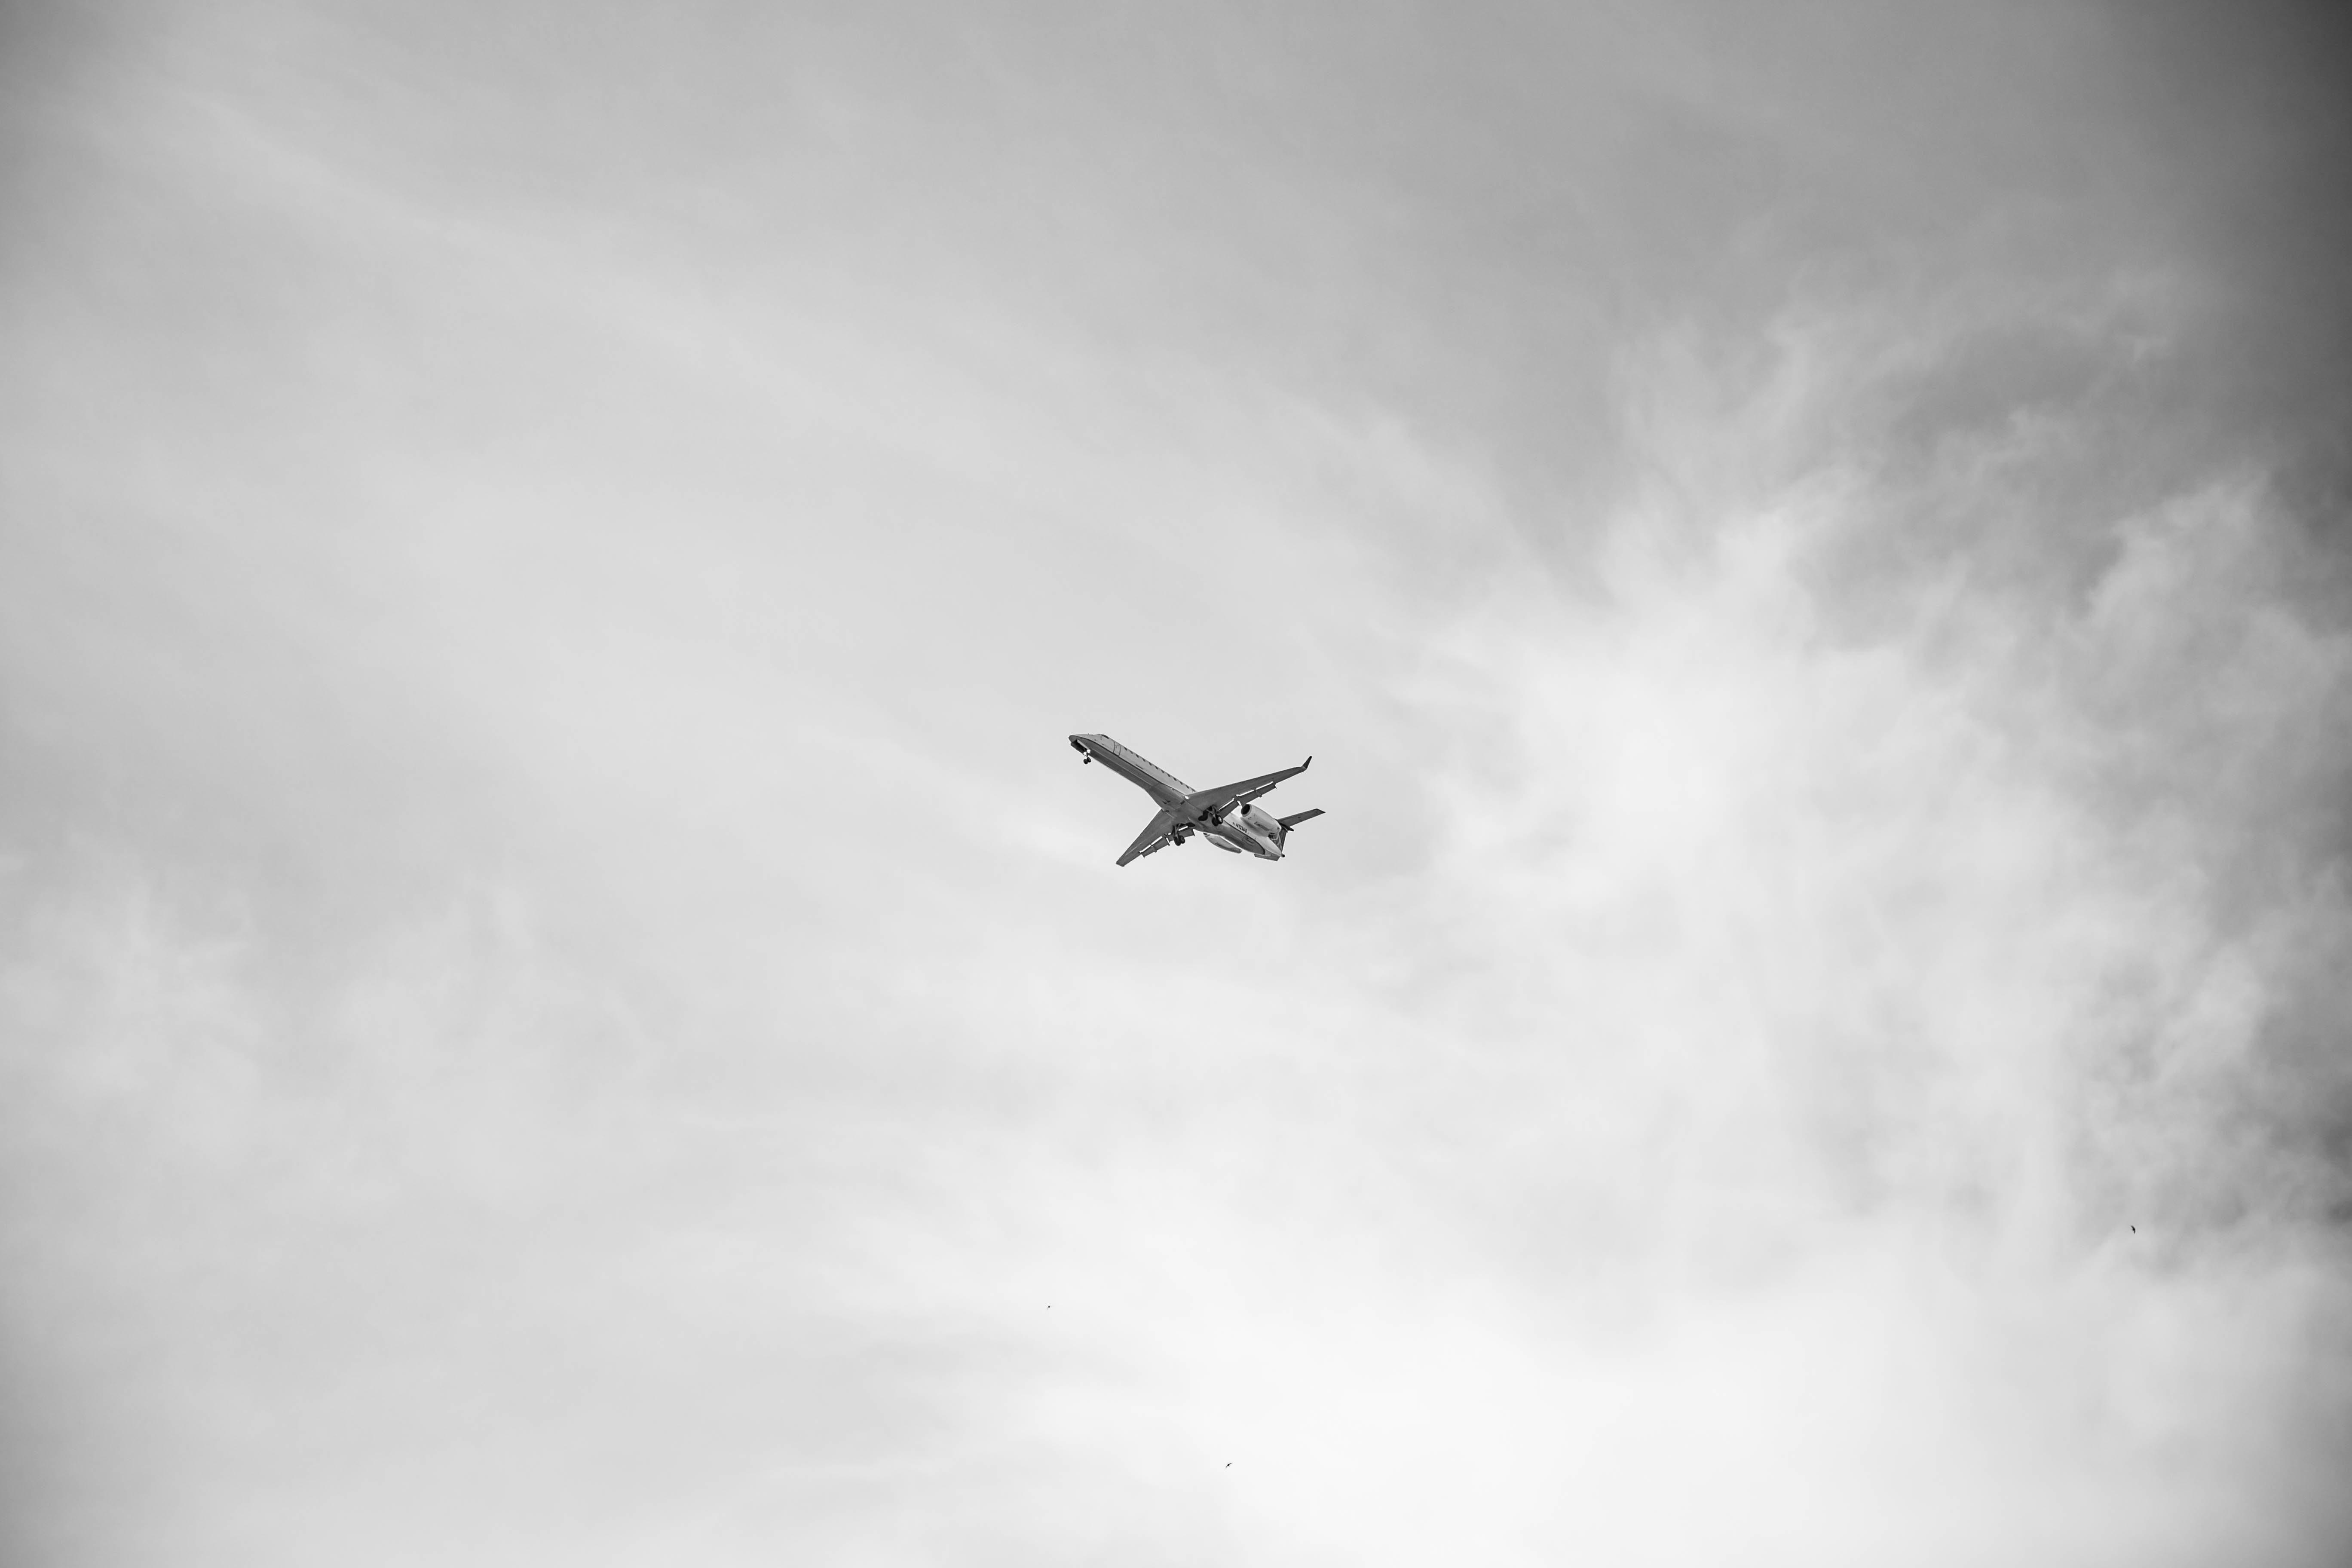 Grayscale photo of airplane